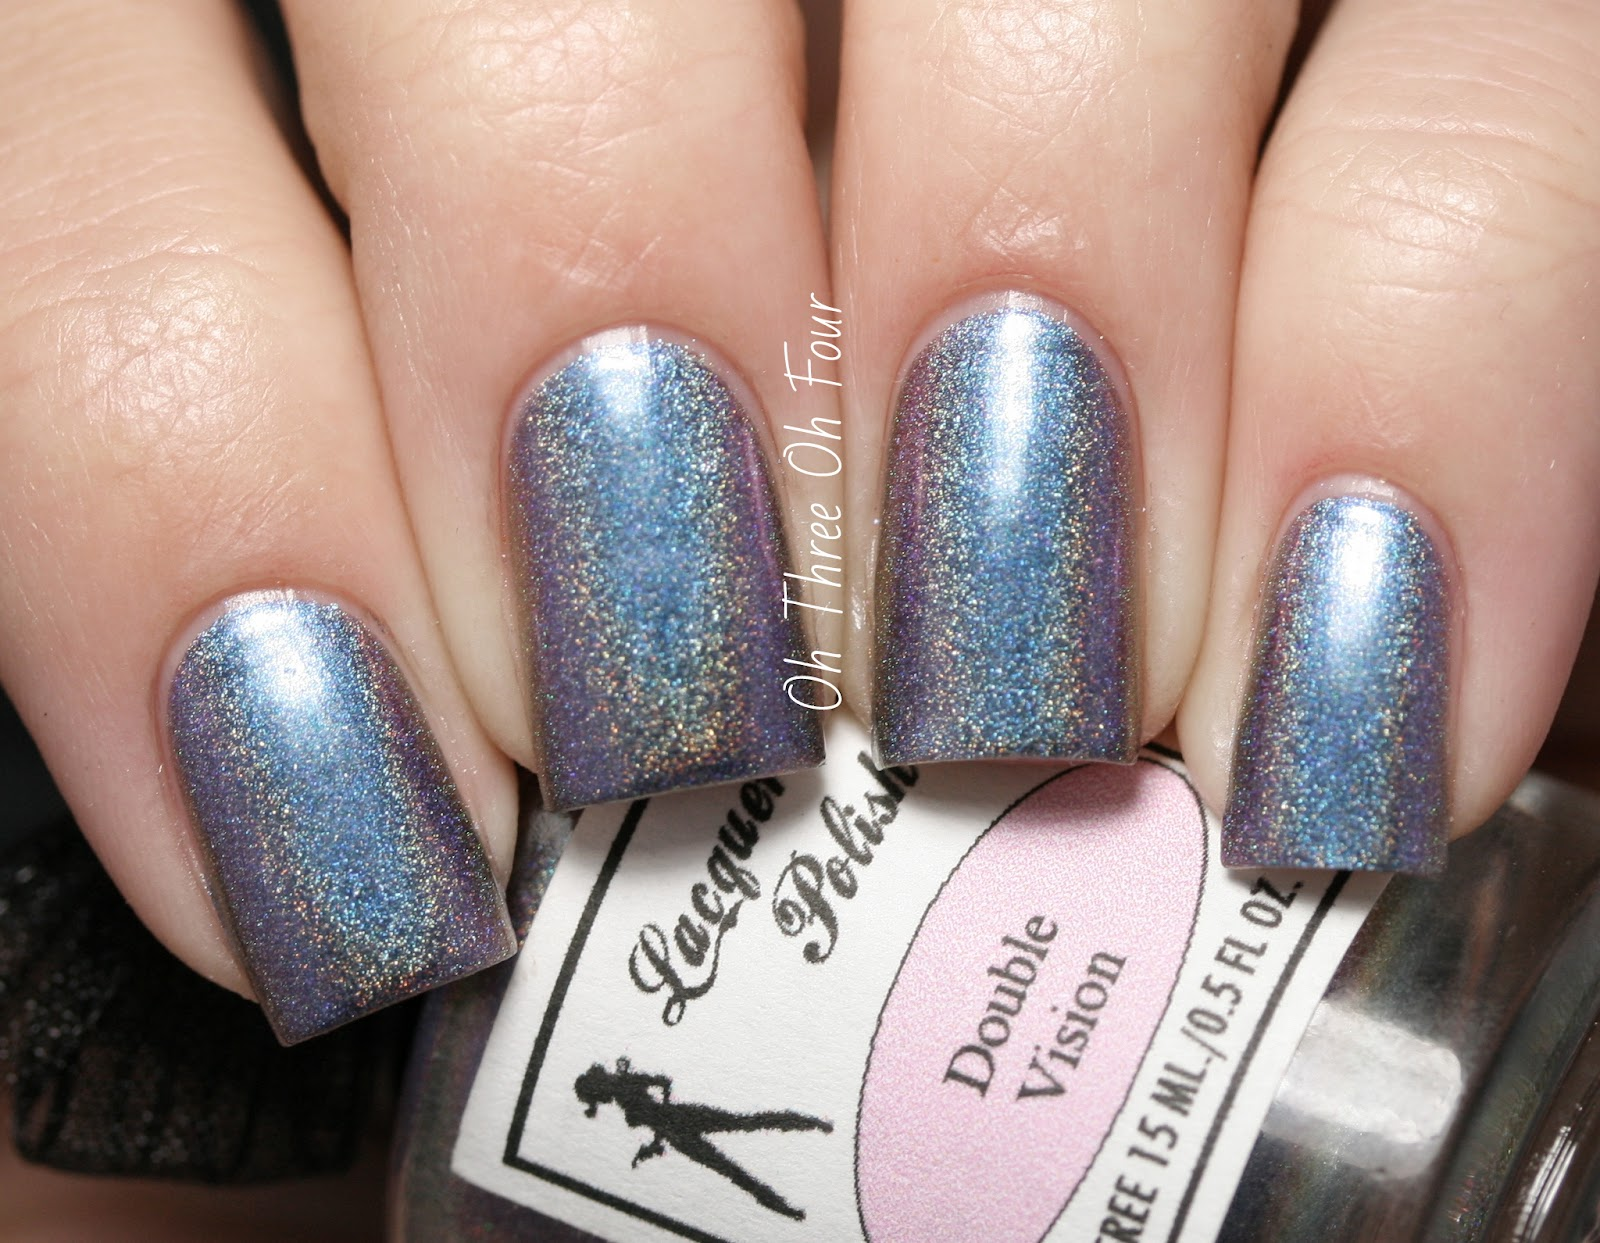 Lacquerhead Polish Double Vision Swatch